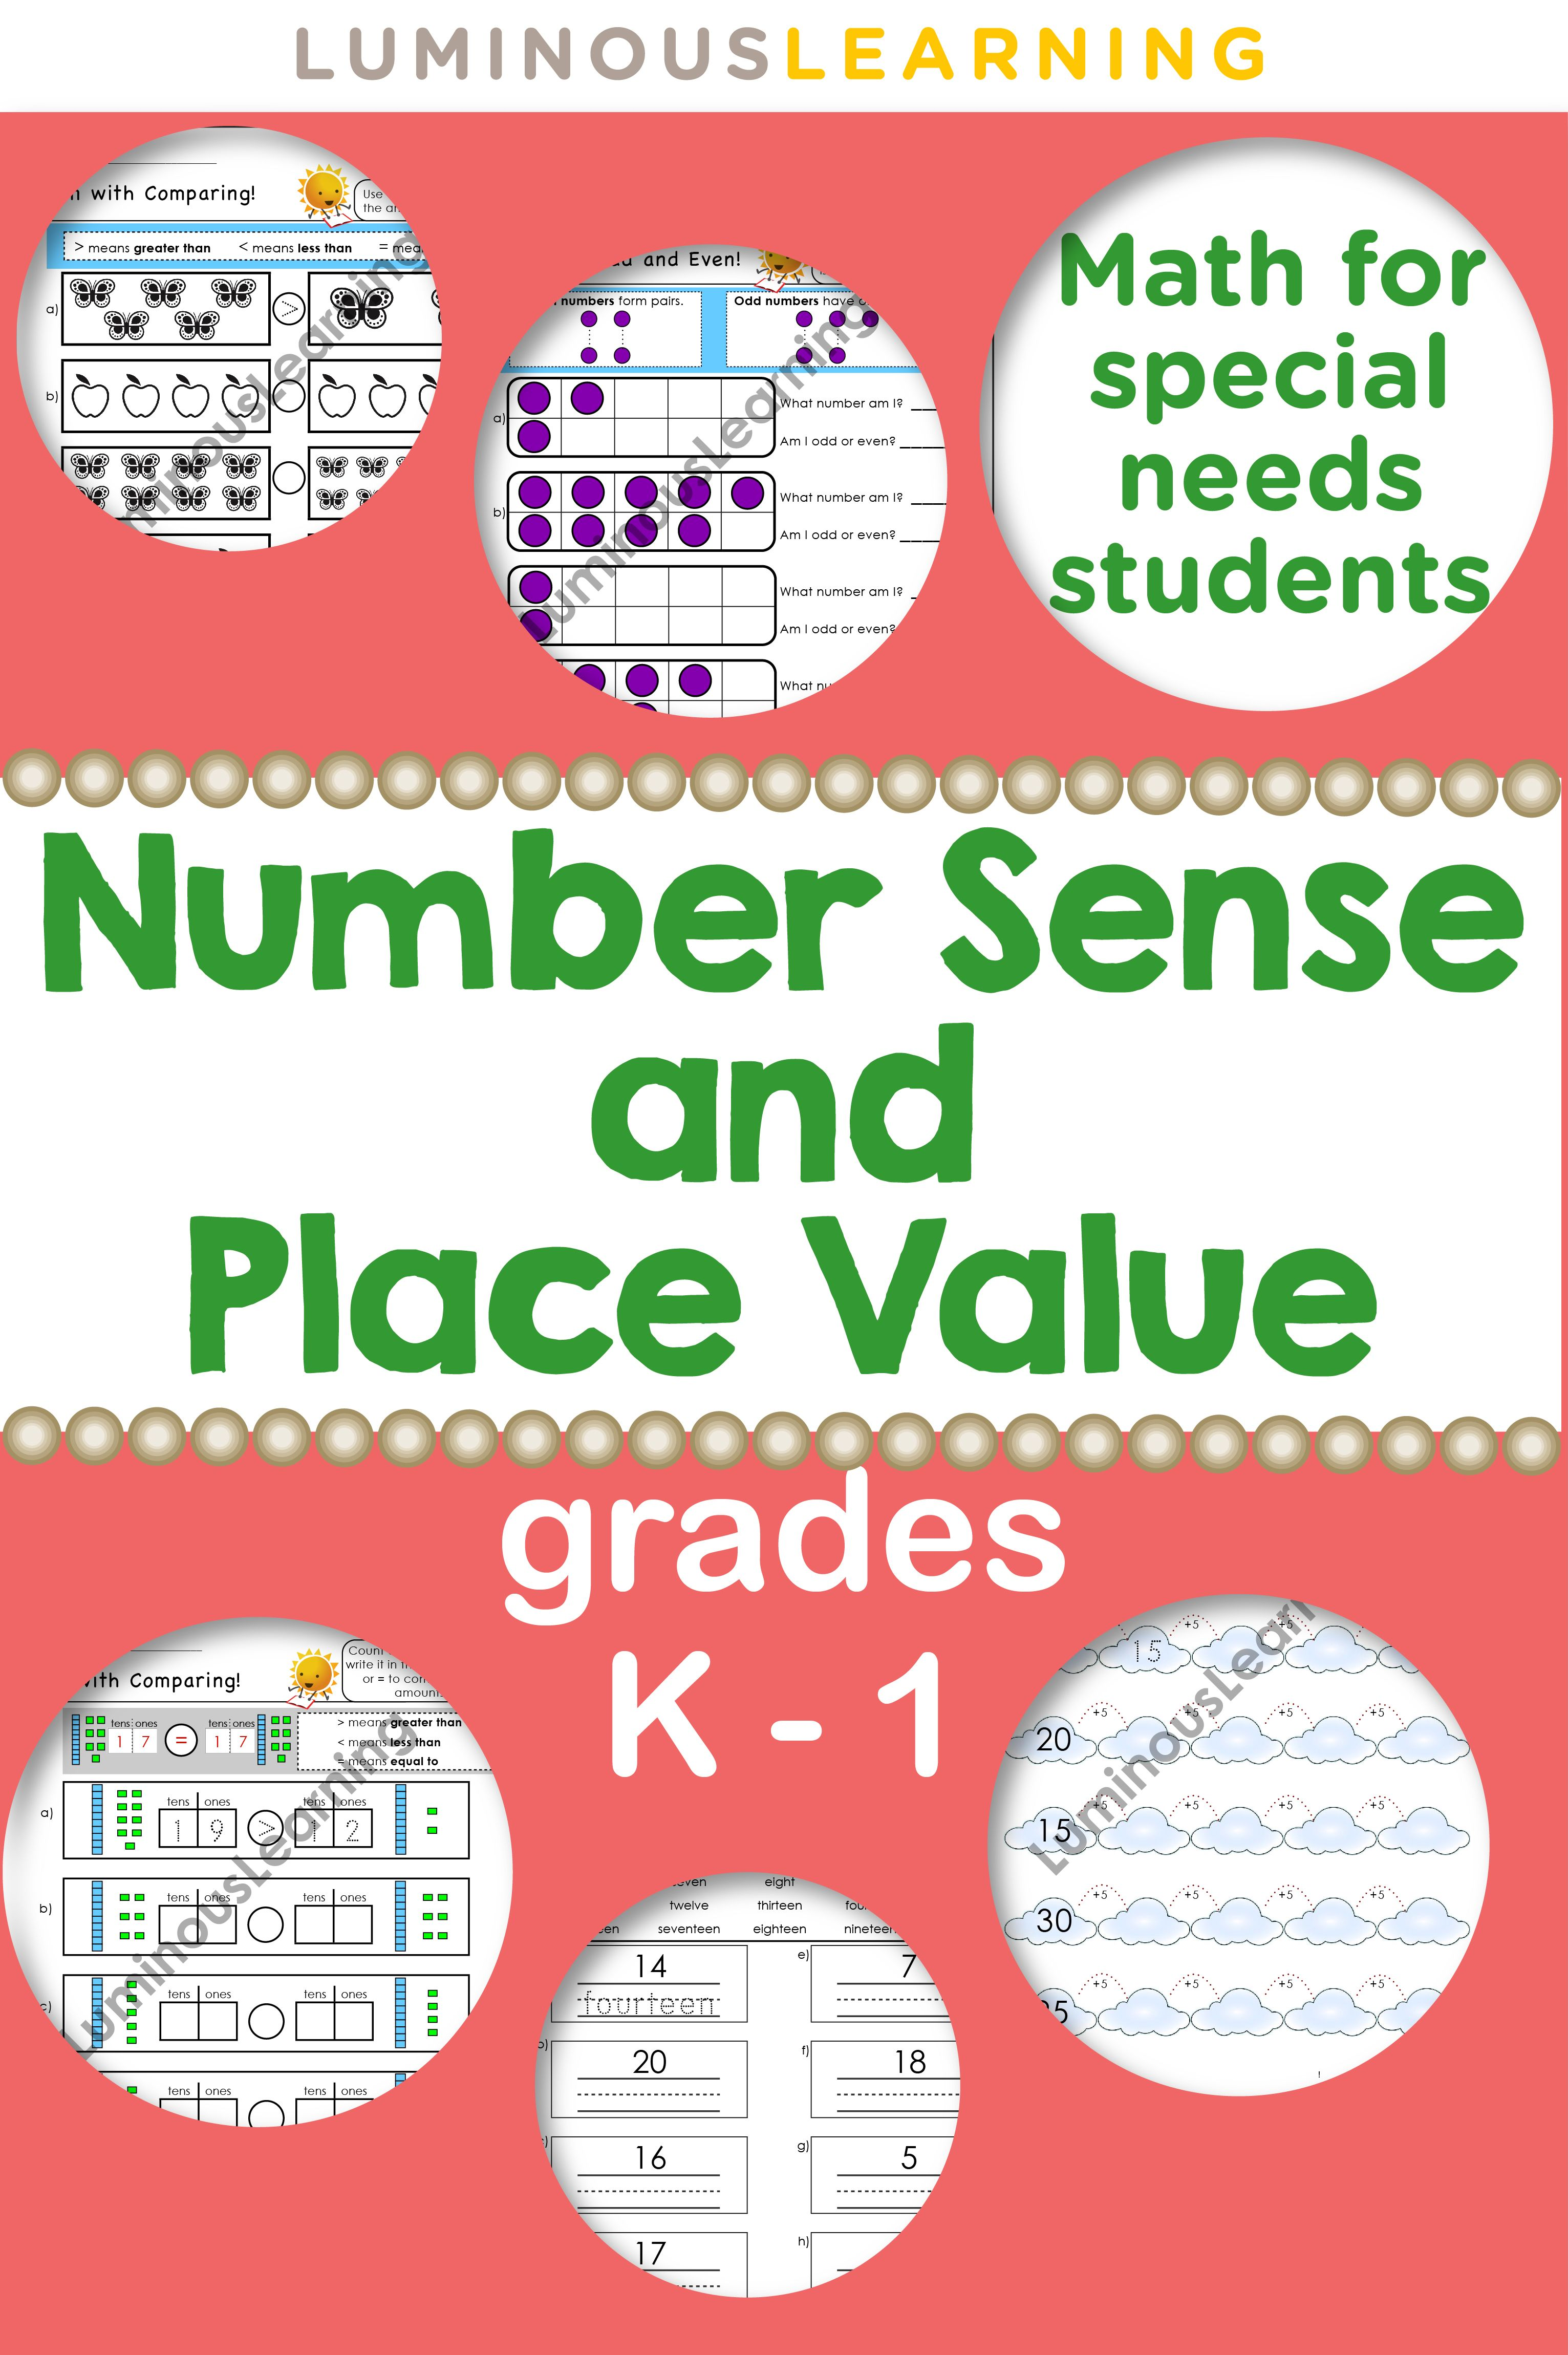 Providing Math Help With Visual Math Worksheets Which Include Base 10 Blocks 10 Frames And